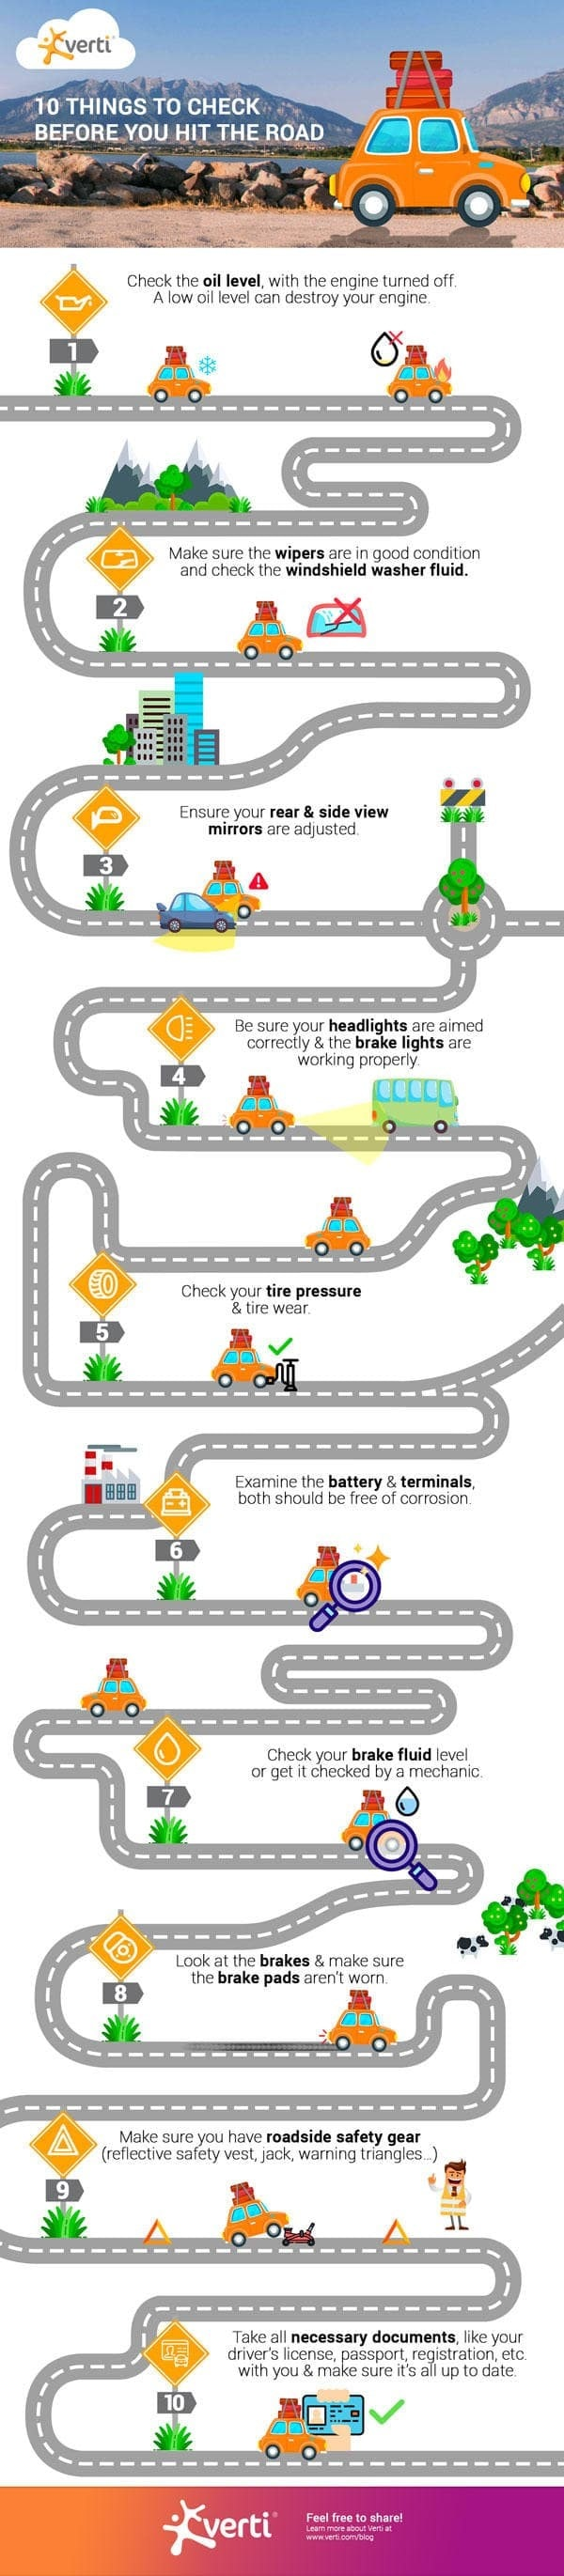 road trip travelling tips - The Best Road Trip Travelling Tips